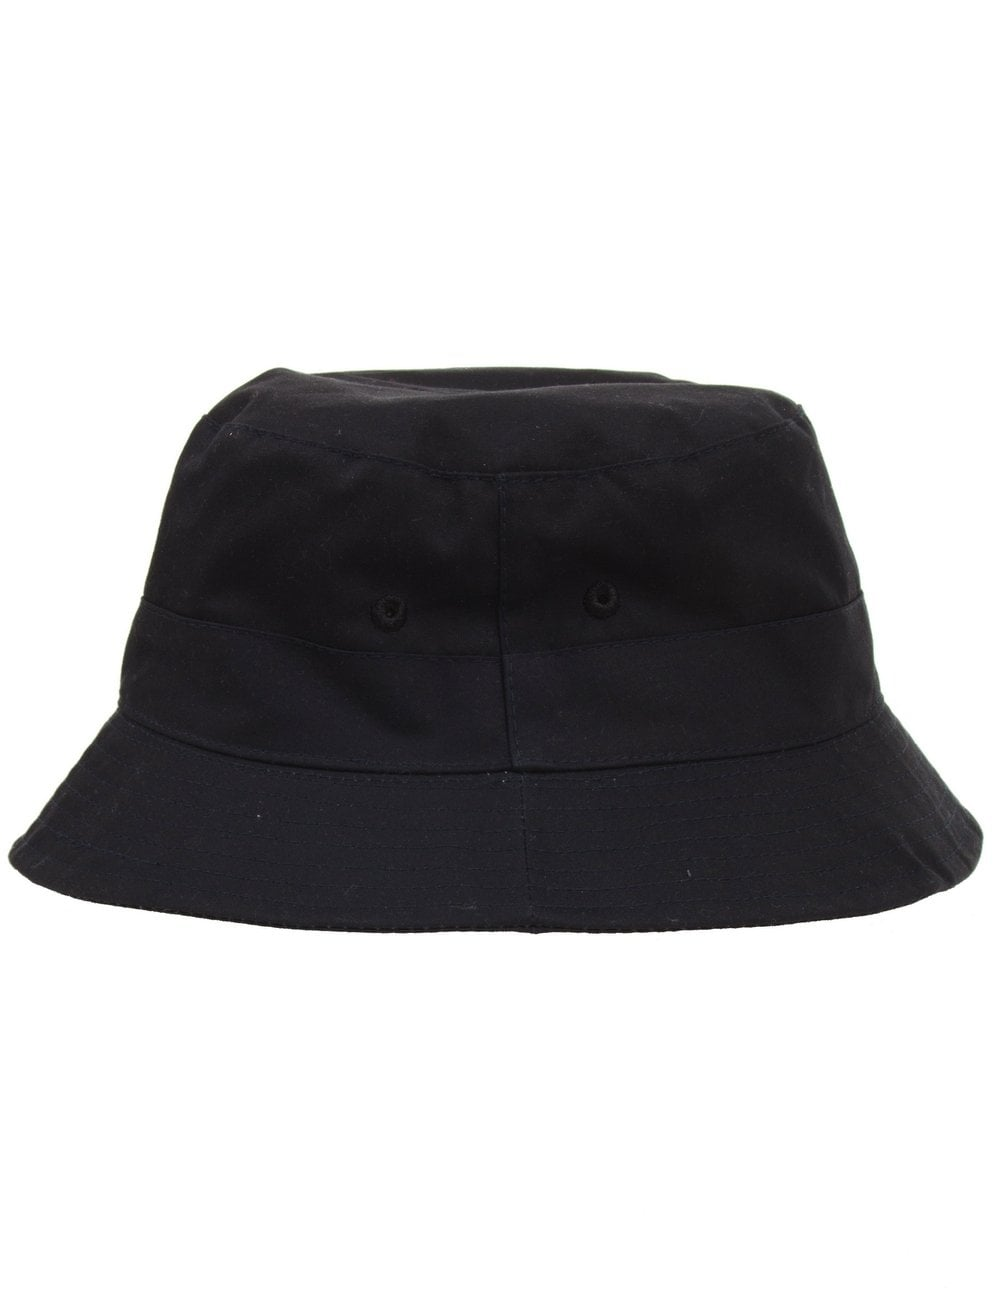 f64fff21c97 Universal Works Bucket Hat - Navy - Accessories from Fat Buddha Store UK